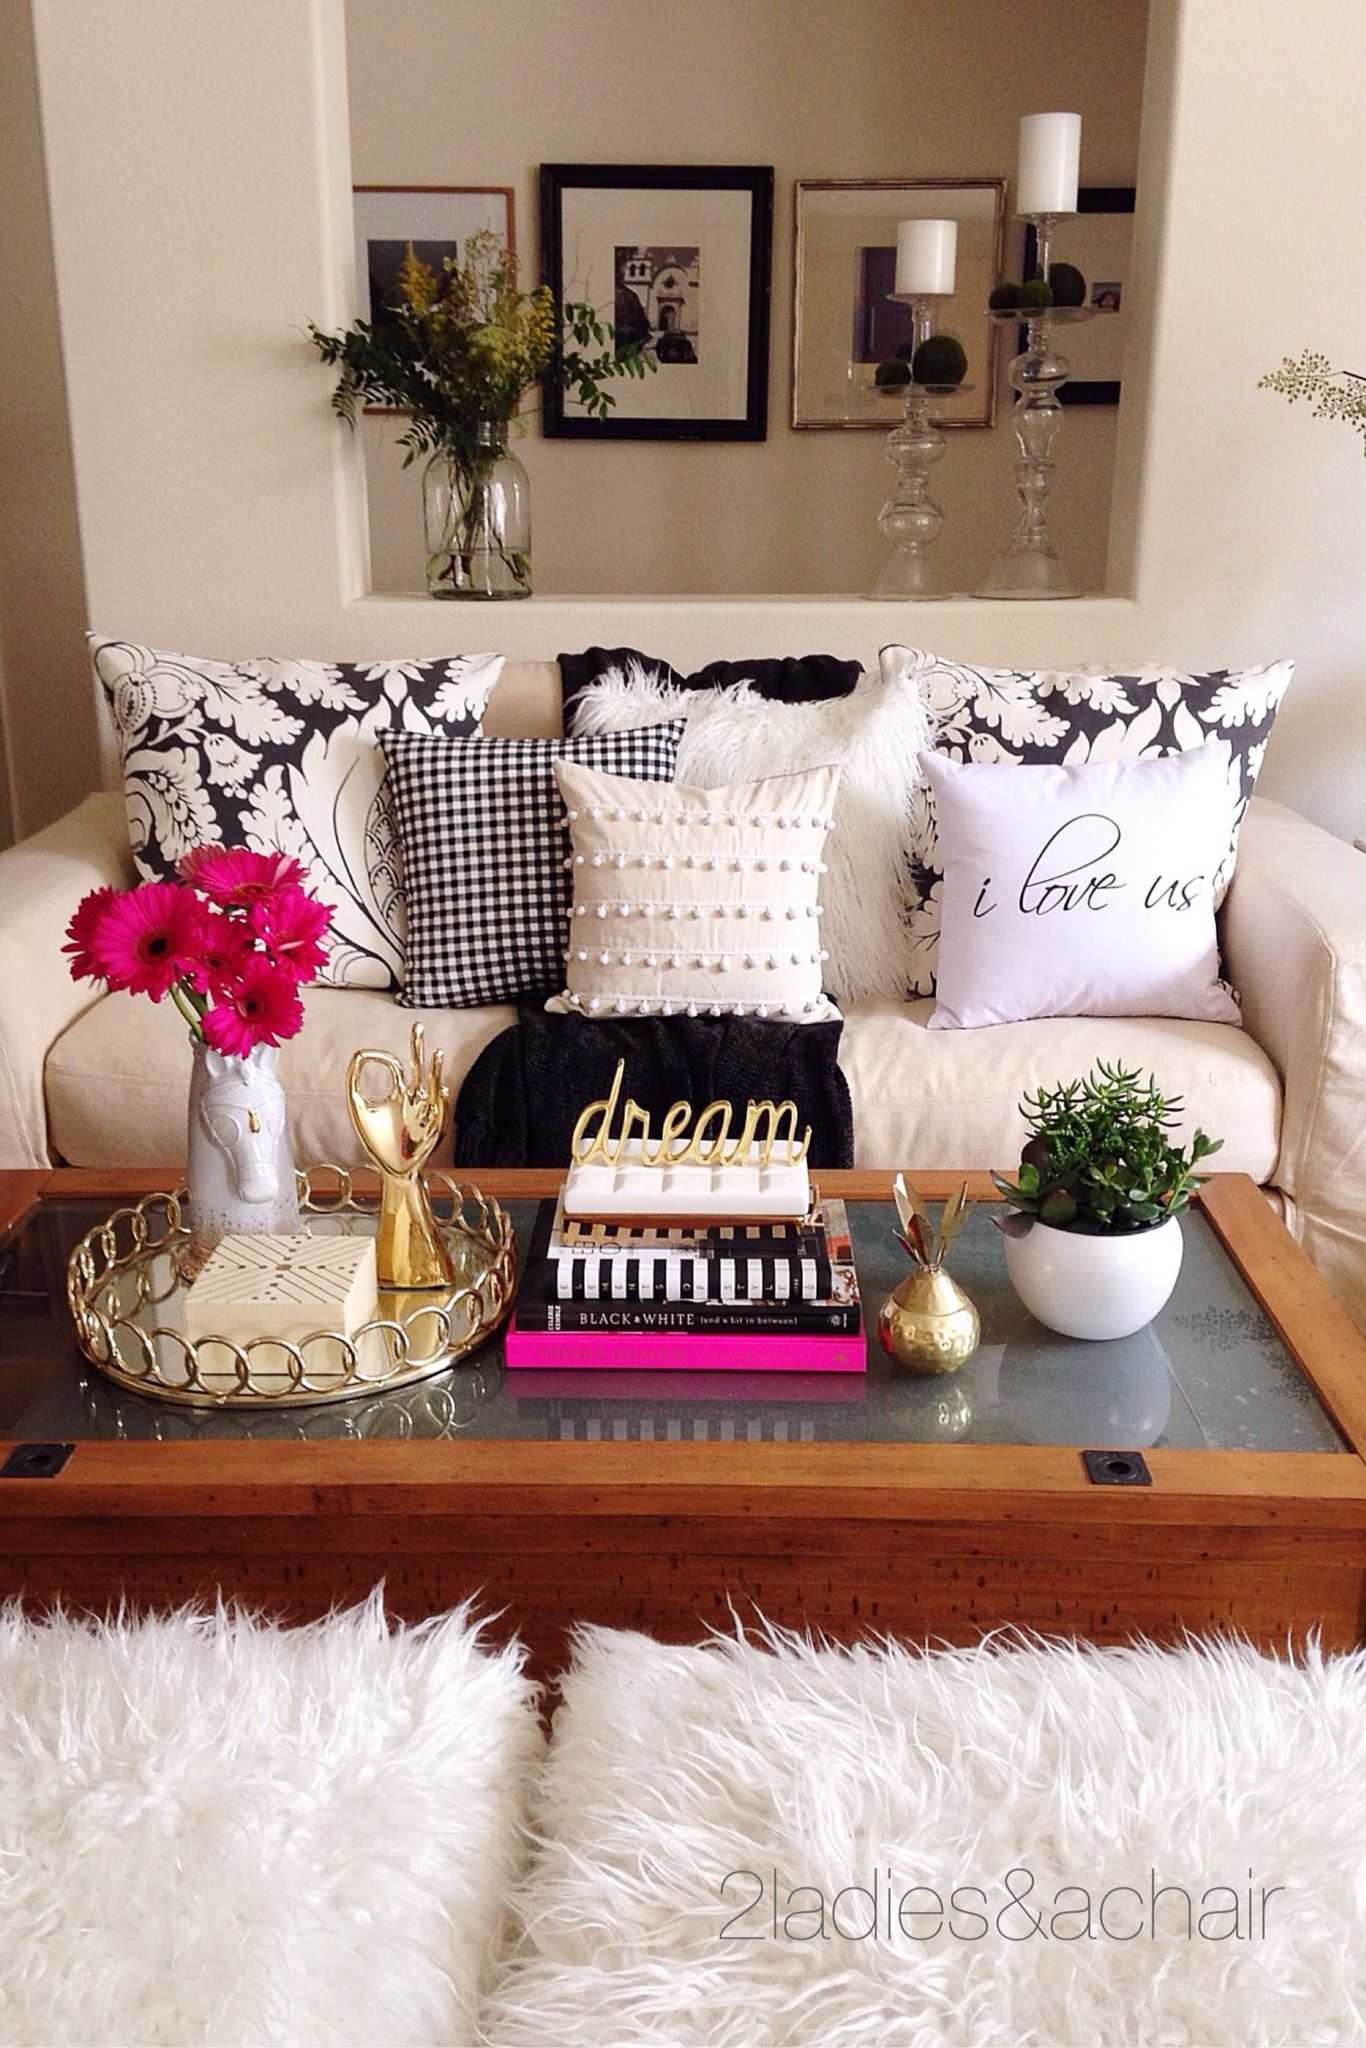 Living Room Decorative Items Mattress India Mar 2 Ladies Spring Home Tour Joan S Decor Ideas We Love The Fun Accessories At Homegoods They Have Perfect Which Makes Personalizing Your Space Easy On Our Last Trip To